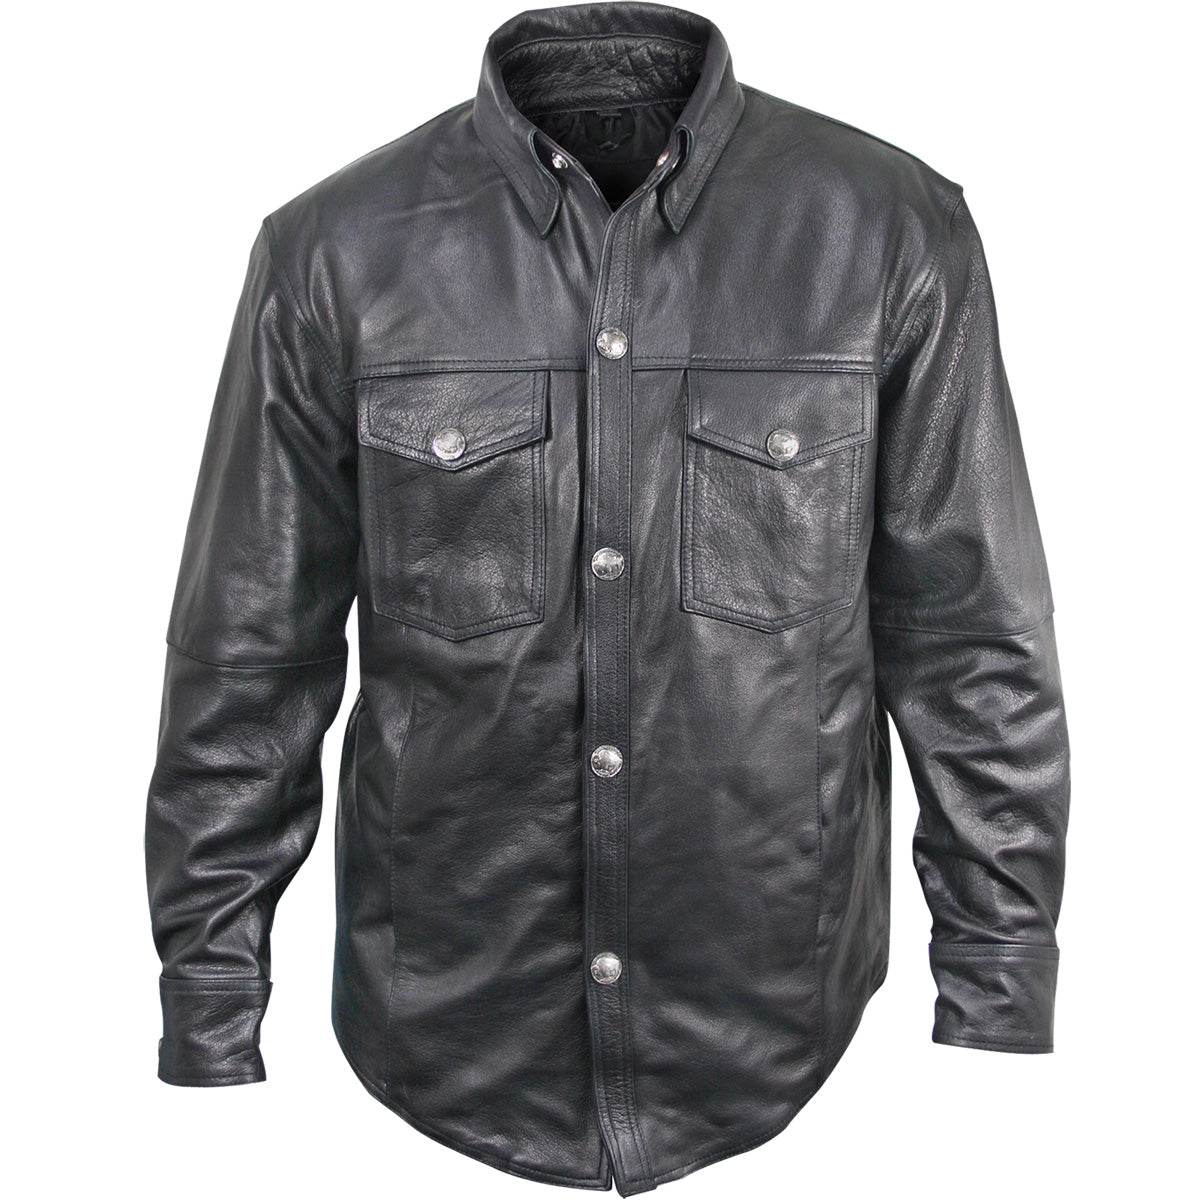 Xelement XS908B Men's Black Leather Shirt with Buffalo Buttons